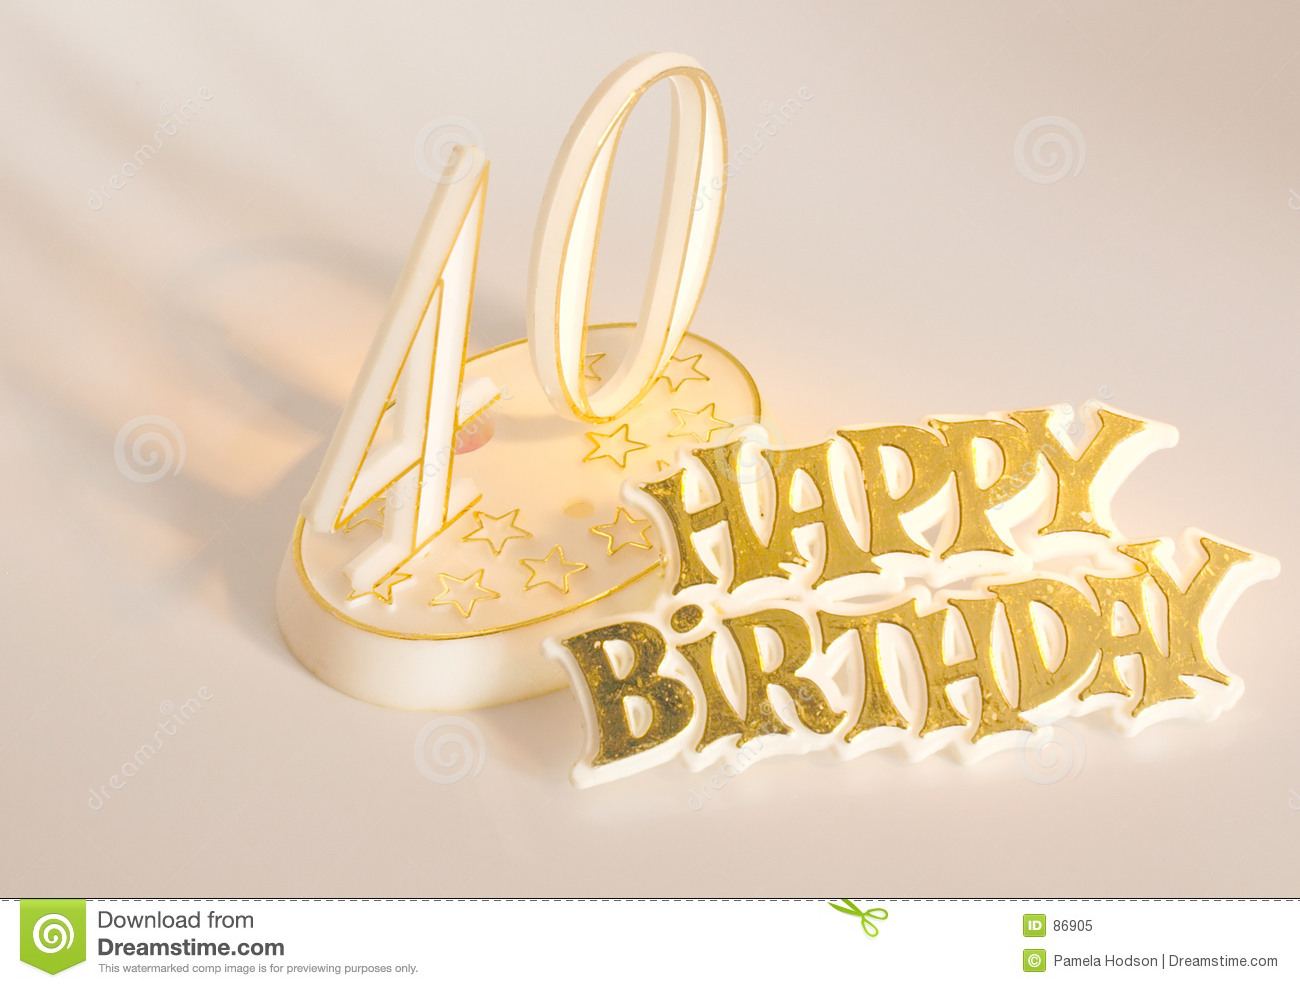 40th birthday background images ; 40th-birthday-86905